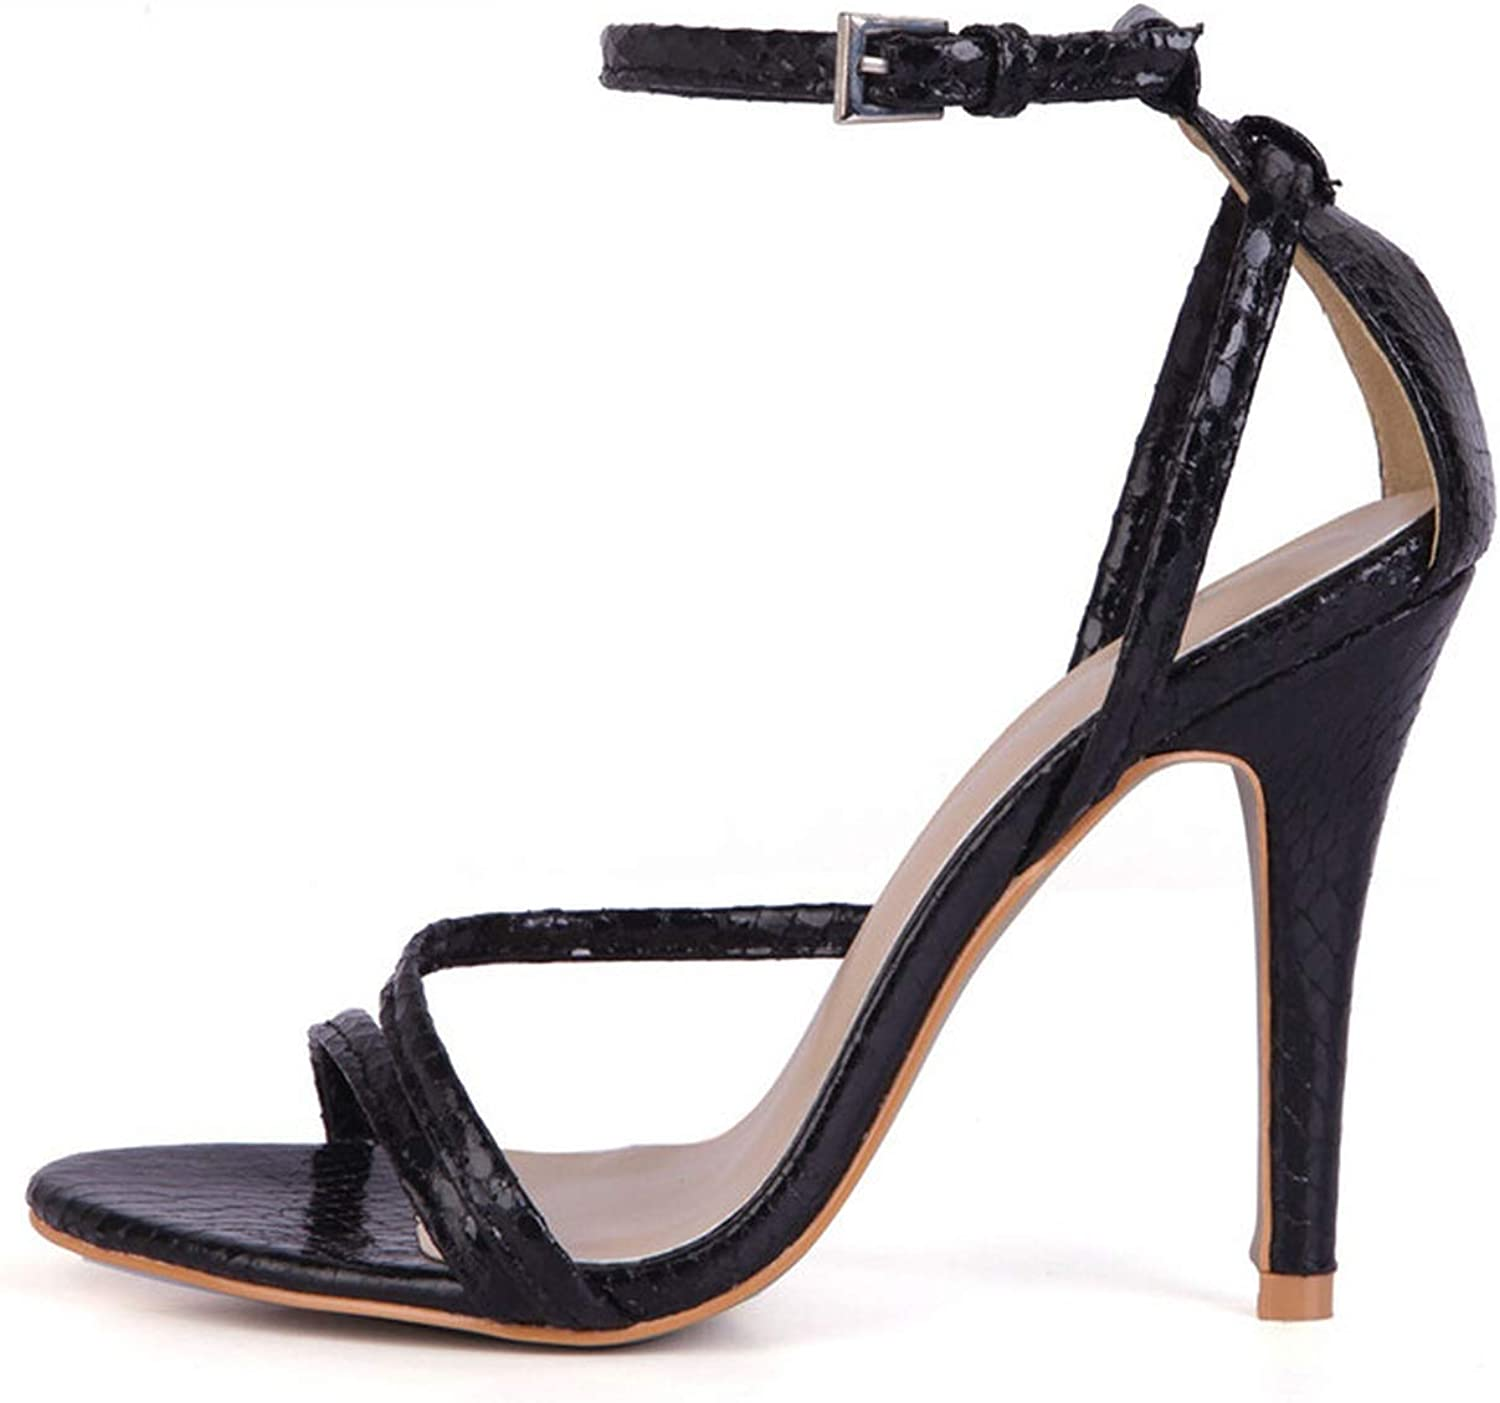 Summer Narrow Strap Buckle Sandals 10 cm Thin high Heels Open Toe shoes Woman Ankle Strap Pumps